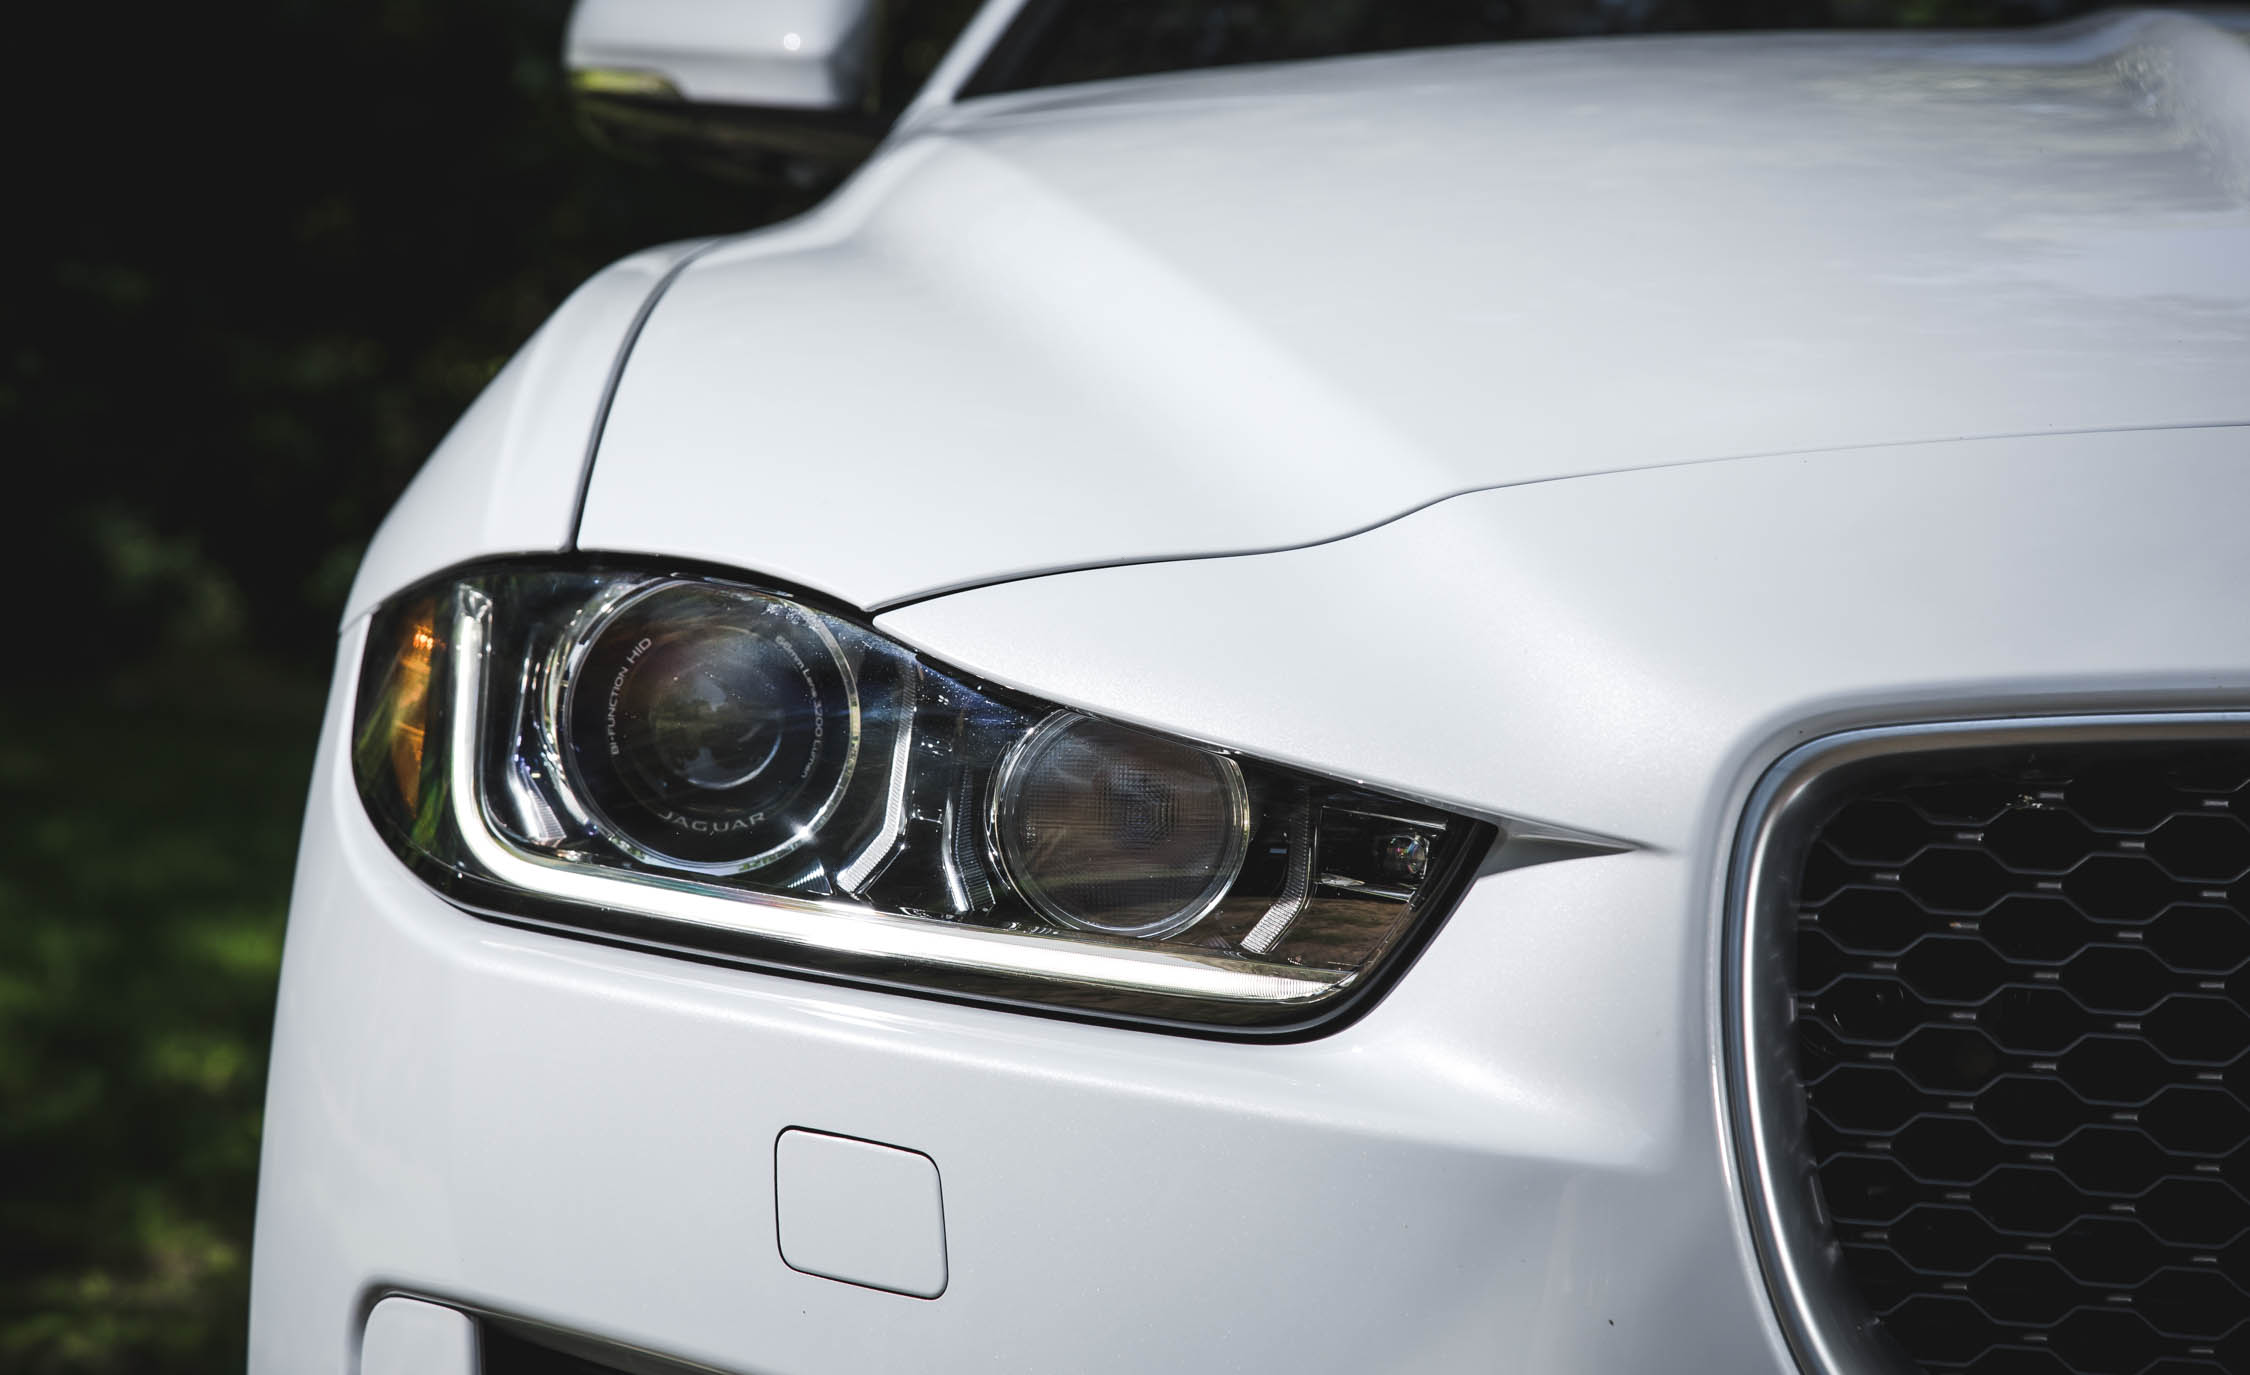 2017 Jaguar Xe White Exterior View Headlight (Photo 27 of 32)